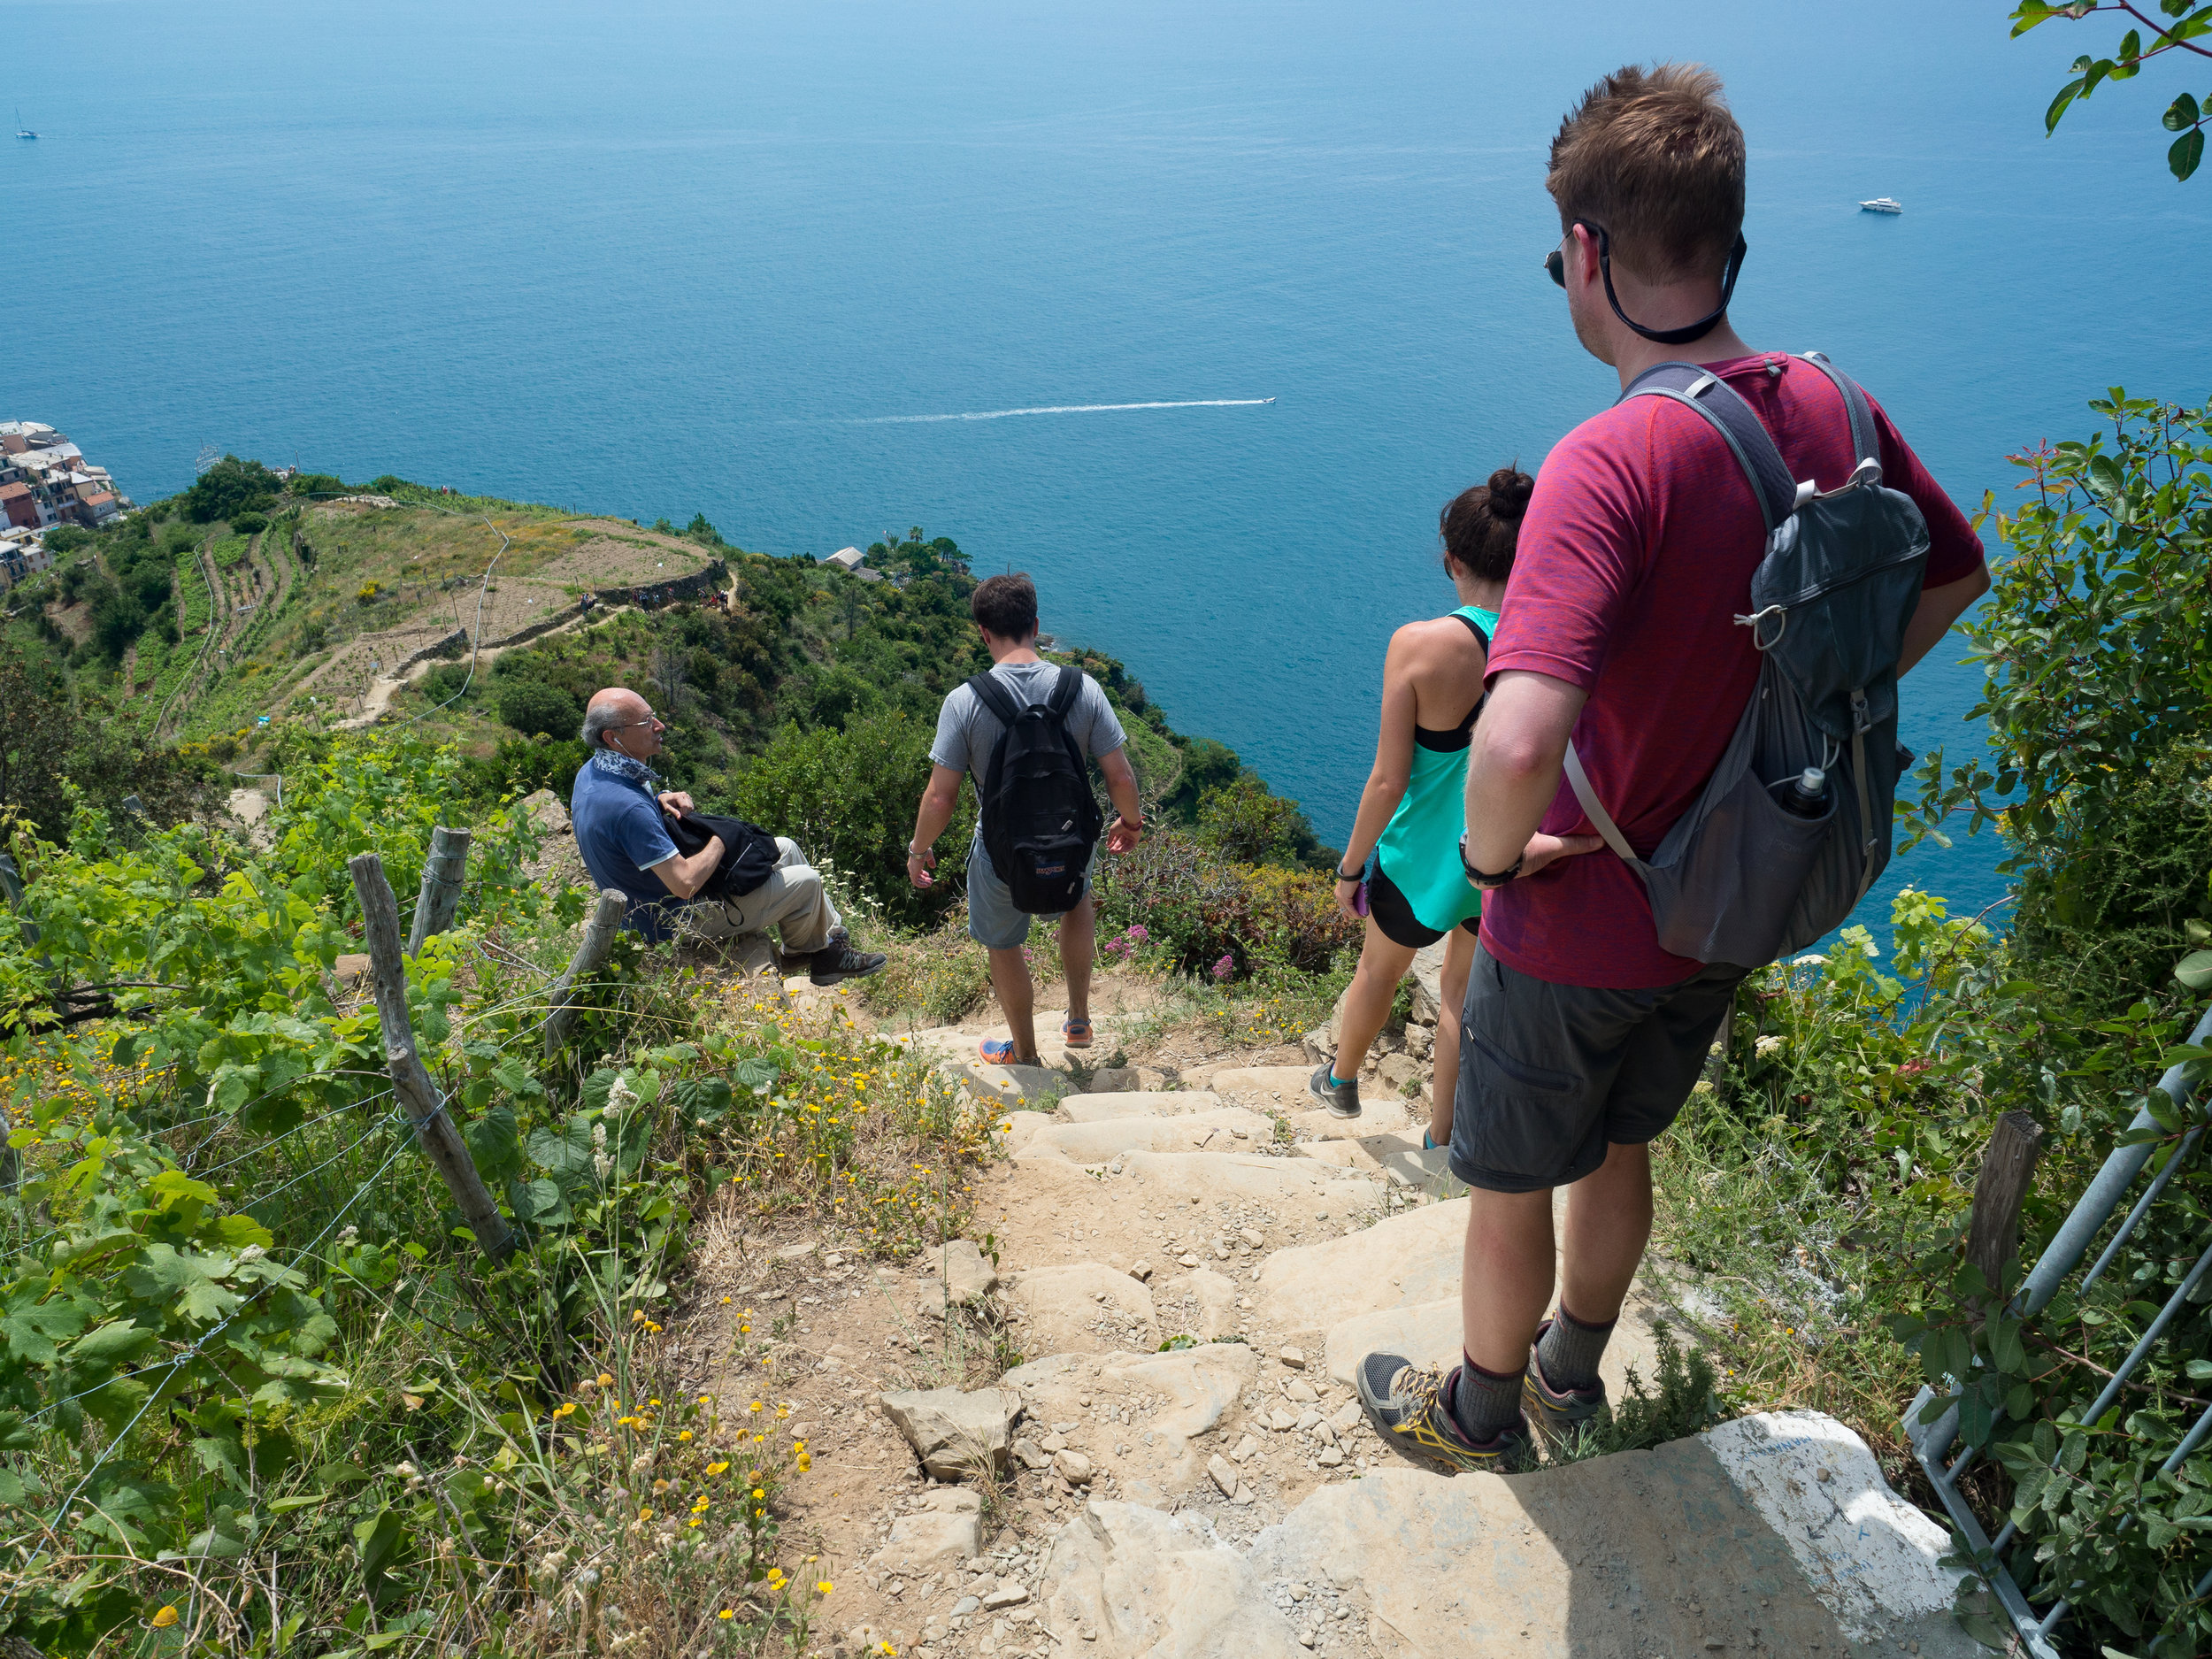 Good grip is essential for the steep steps and dusty trails of Cinque Terre!